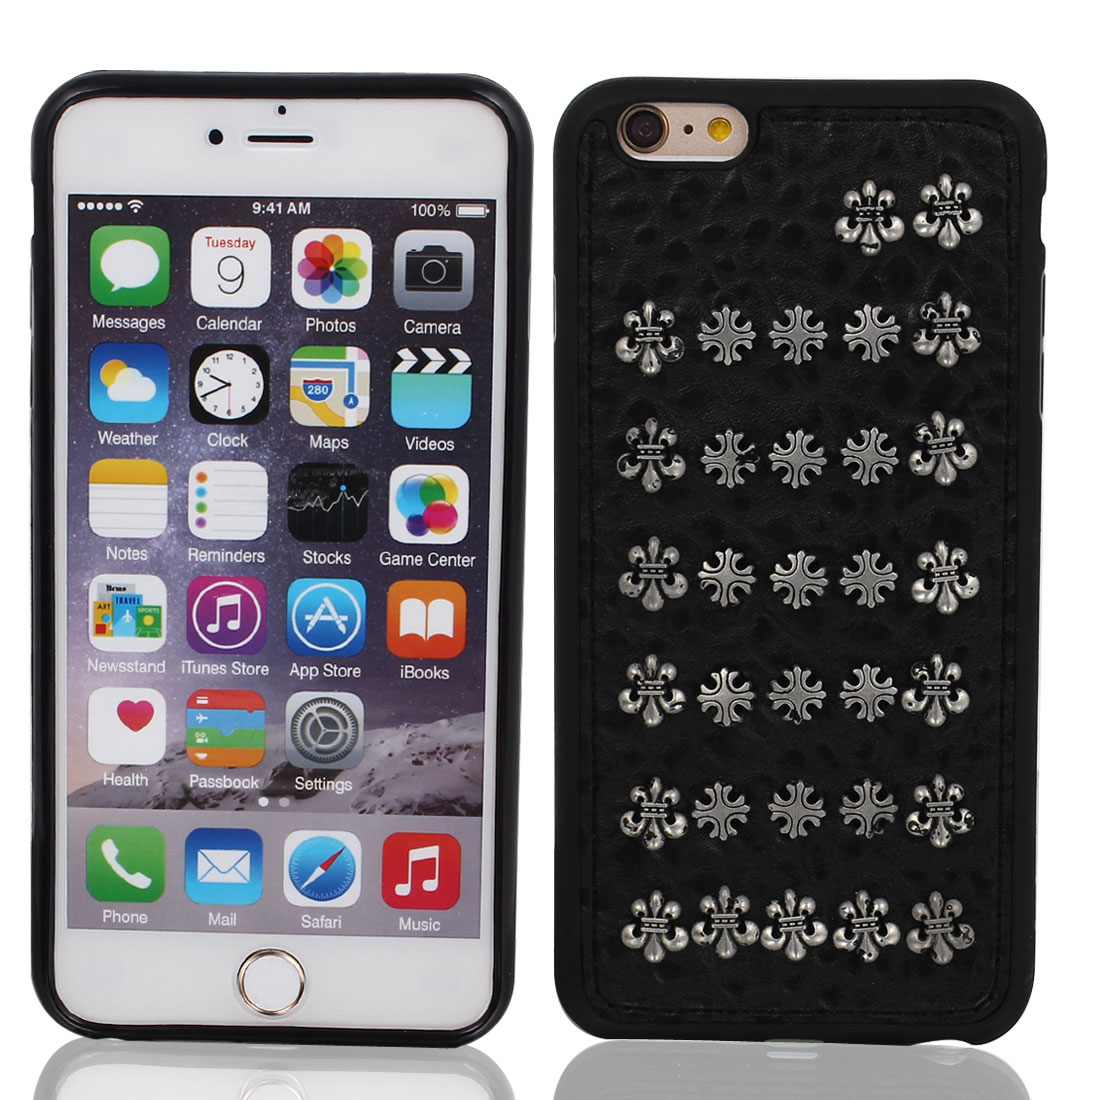 Faux Leather Rivet Decor Protective Shell Case Cover for iPhone 6 Plus 5.5""